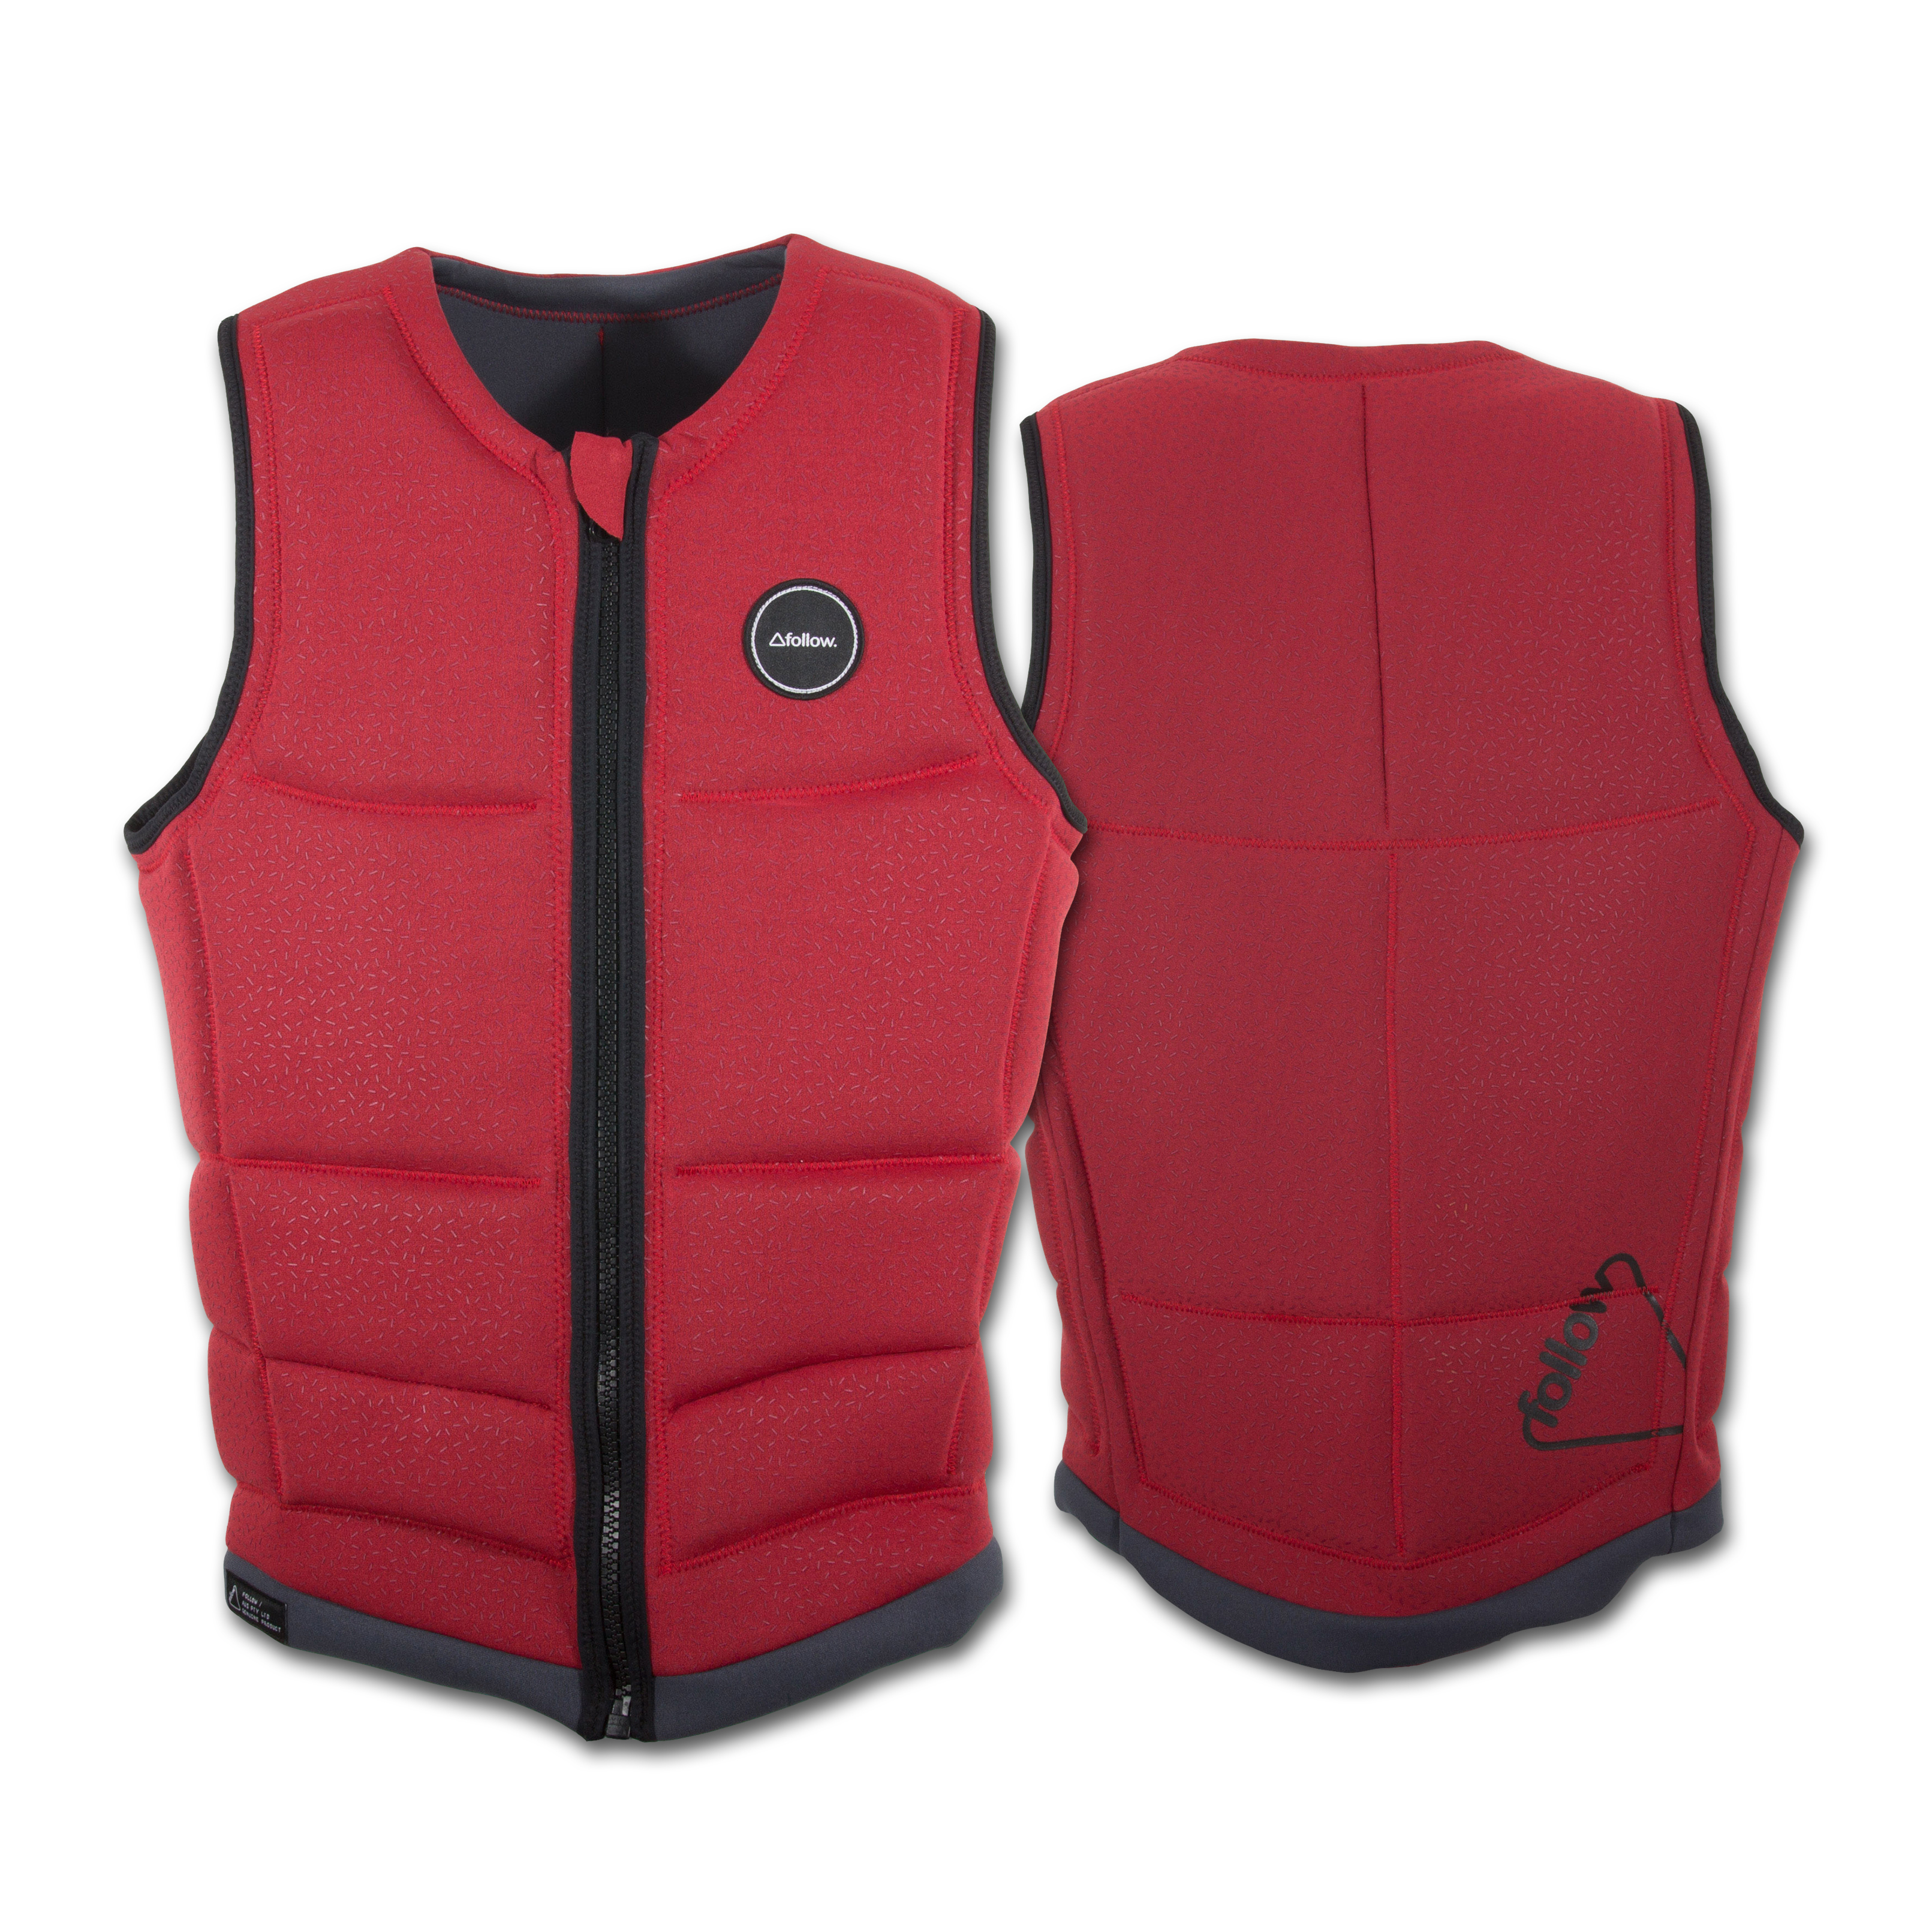 TOKEN REVERSIBLE IMPACT VEST RED FOLLOW 2016